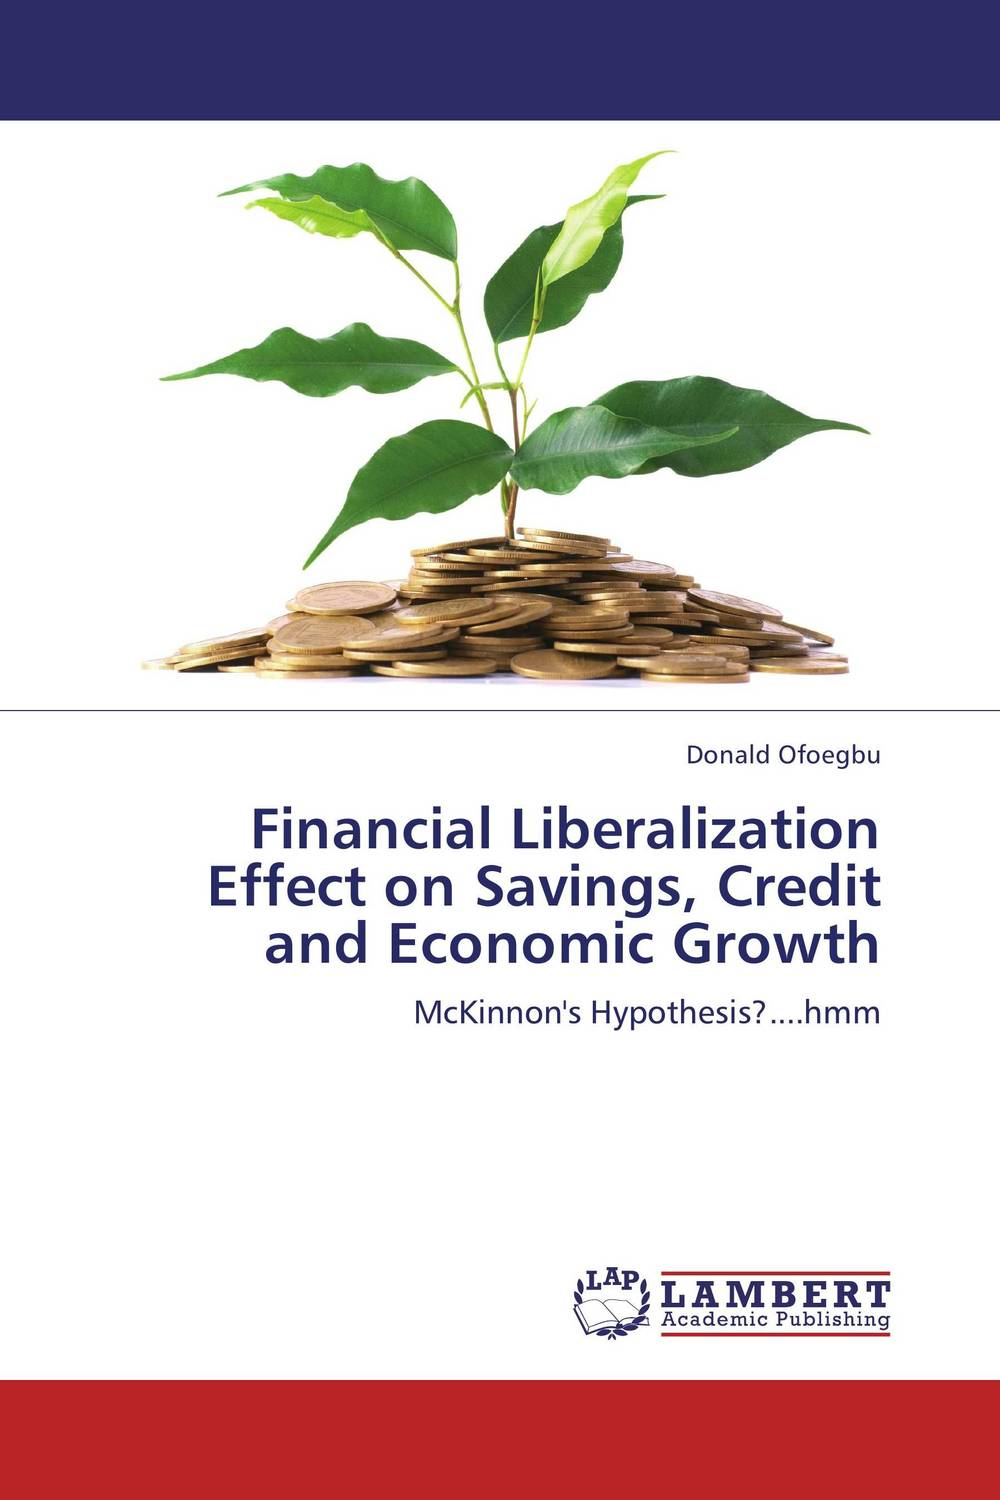 Financial Liberalization Effect on Savings, Credit and Economic Growth the importance of access to credit on economic growth